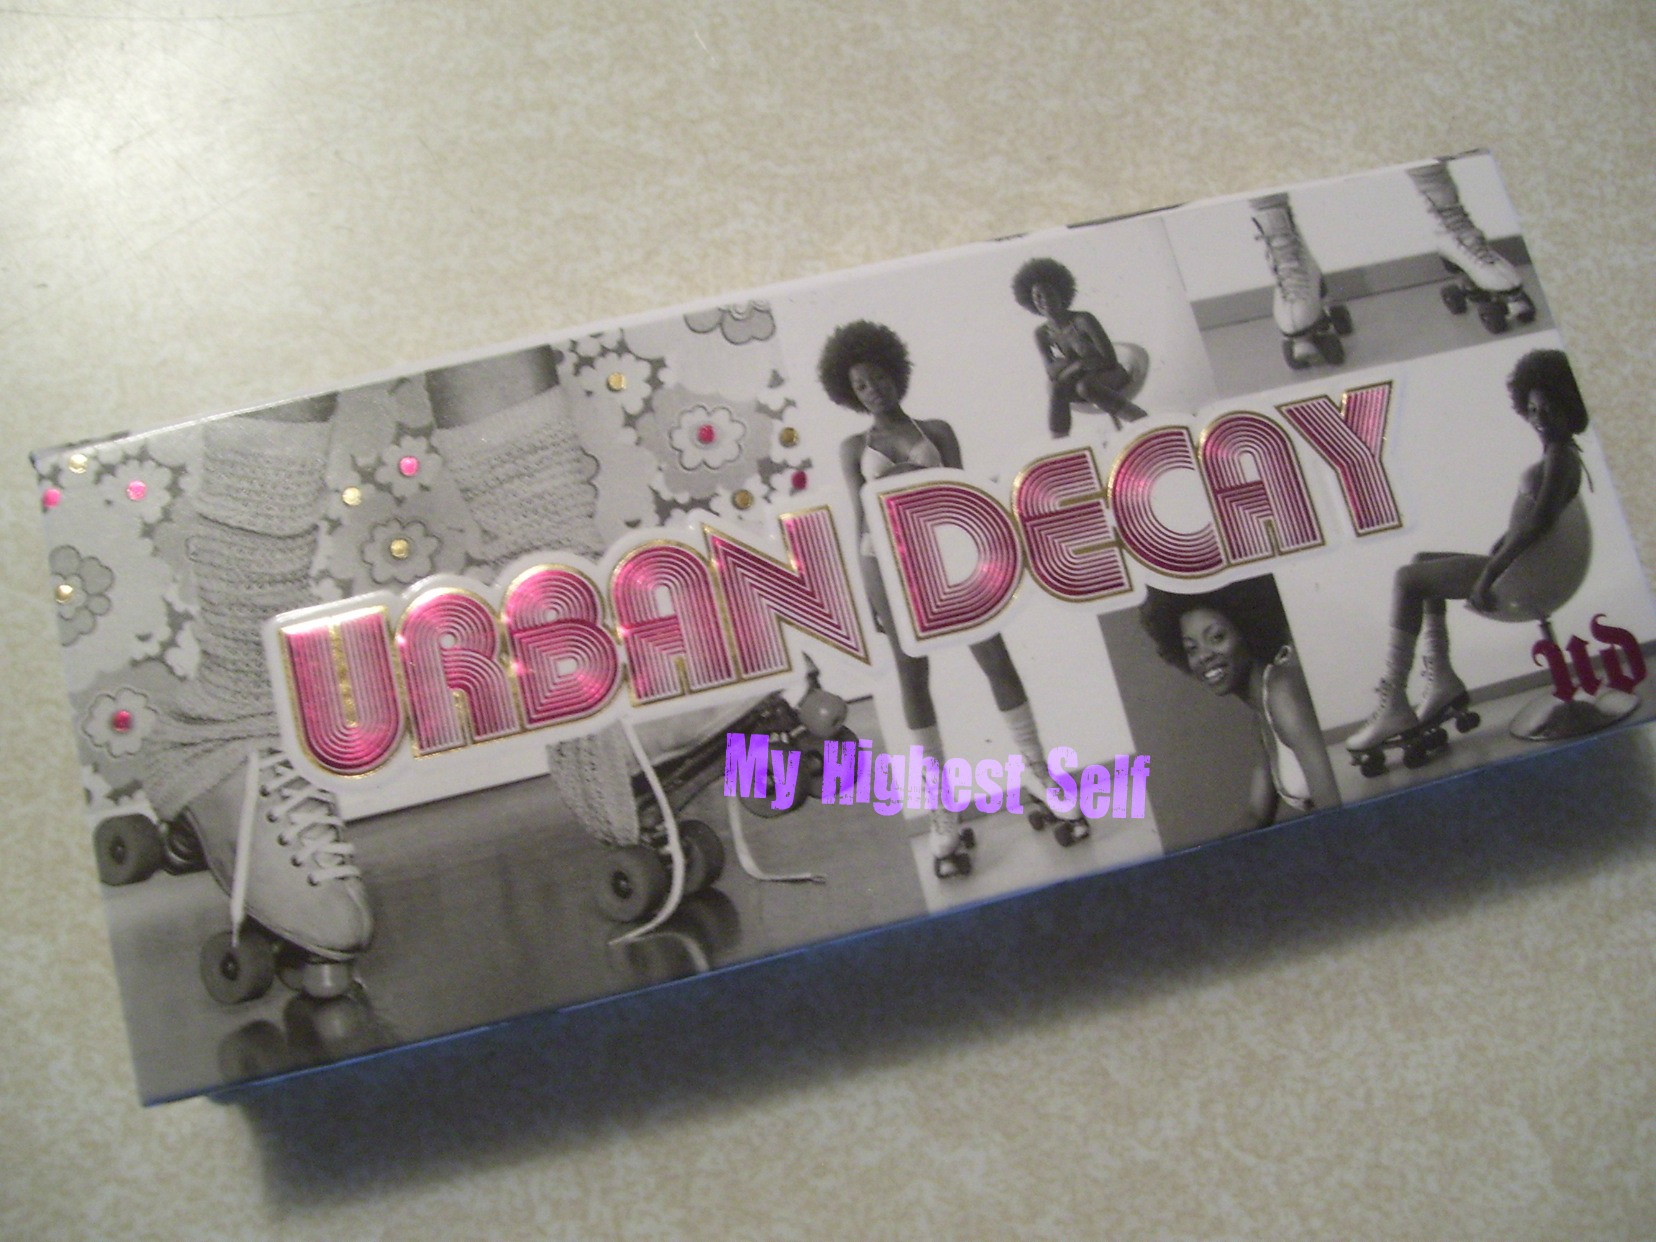 Photos, Swatches, Review: Urban Decay Rollergirl Palette